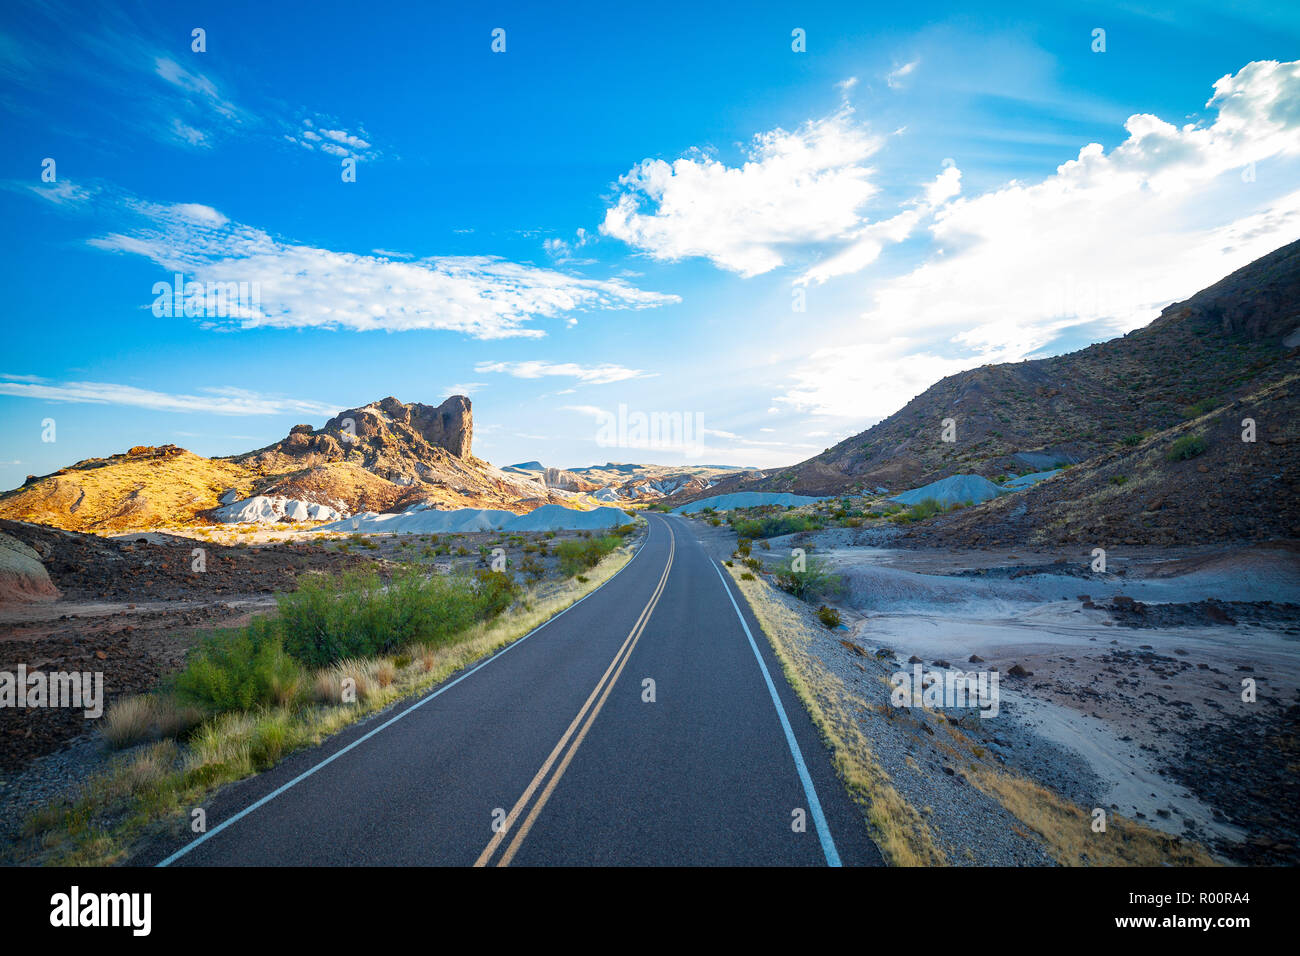 Mountains of the Ross Maxwell Scenic Drive. - Stock Image